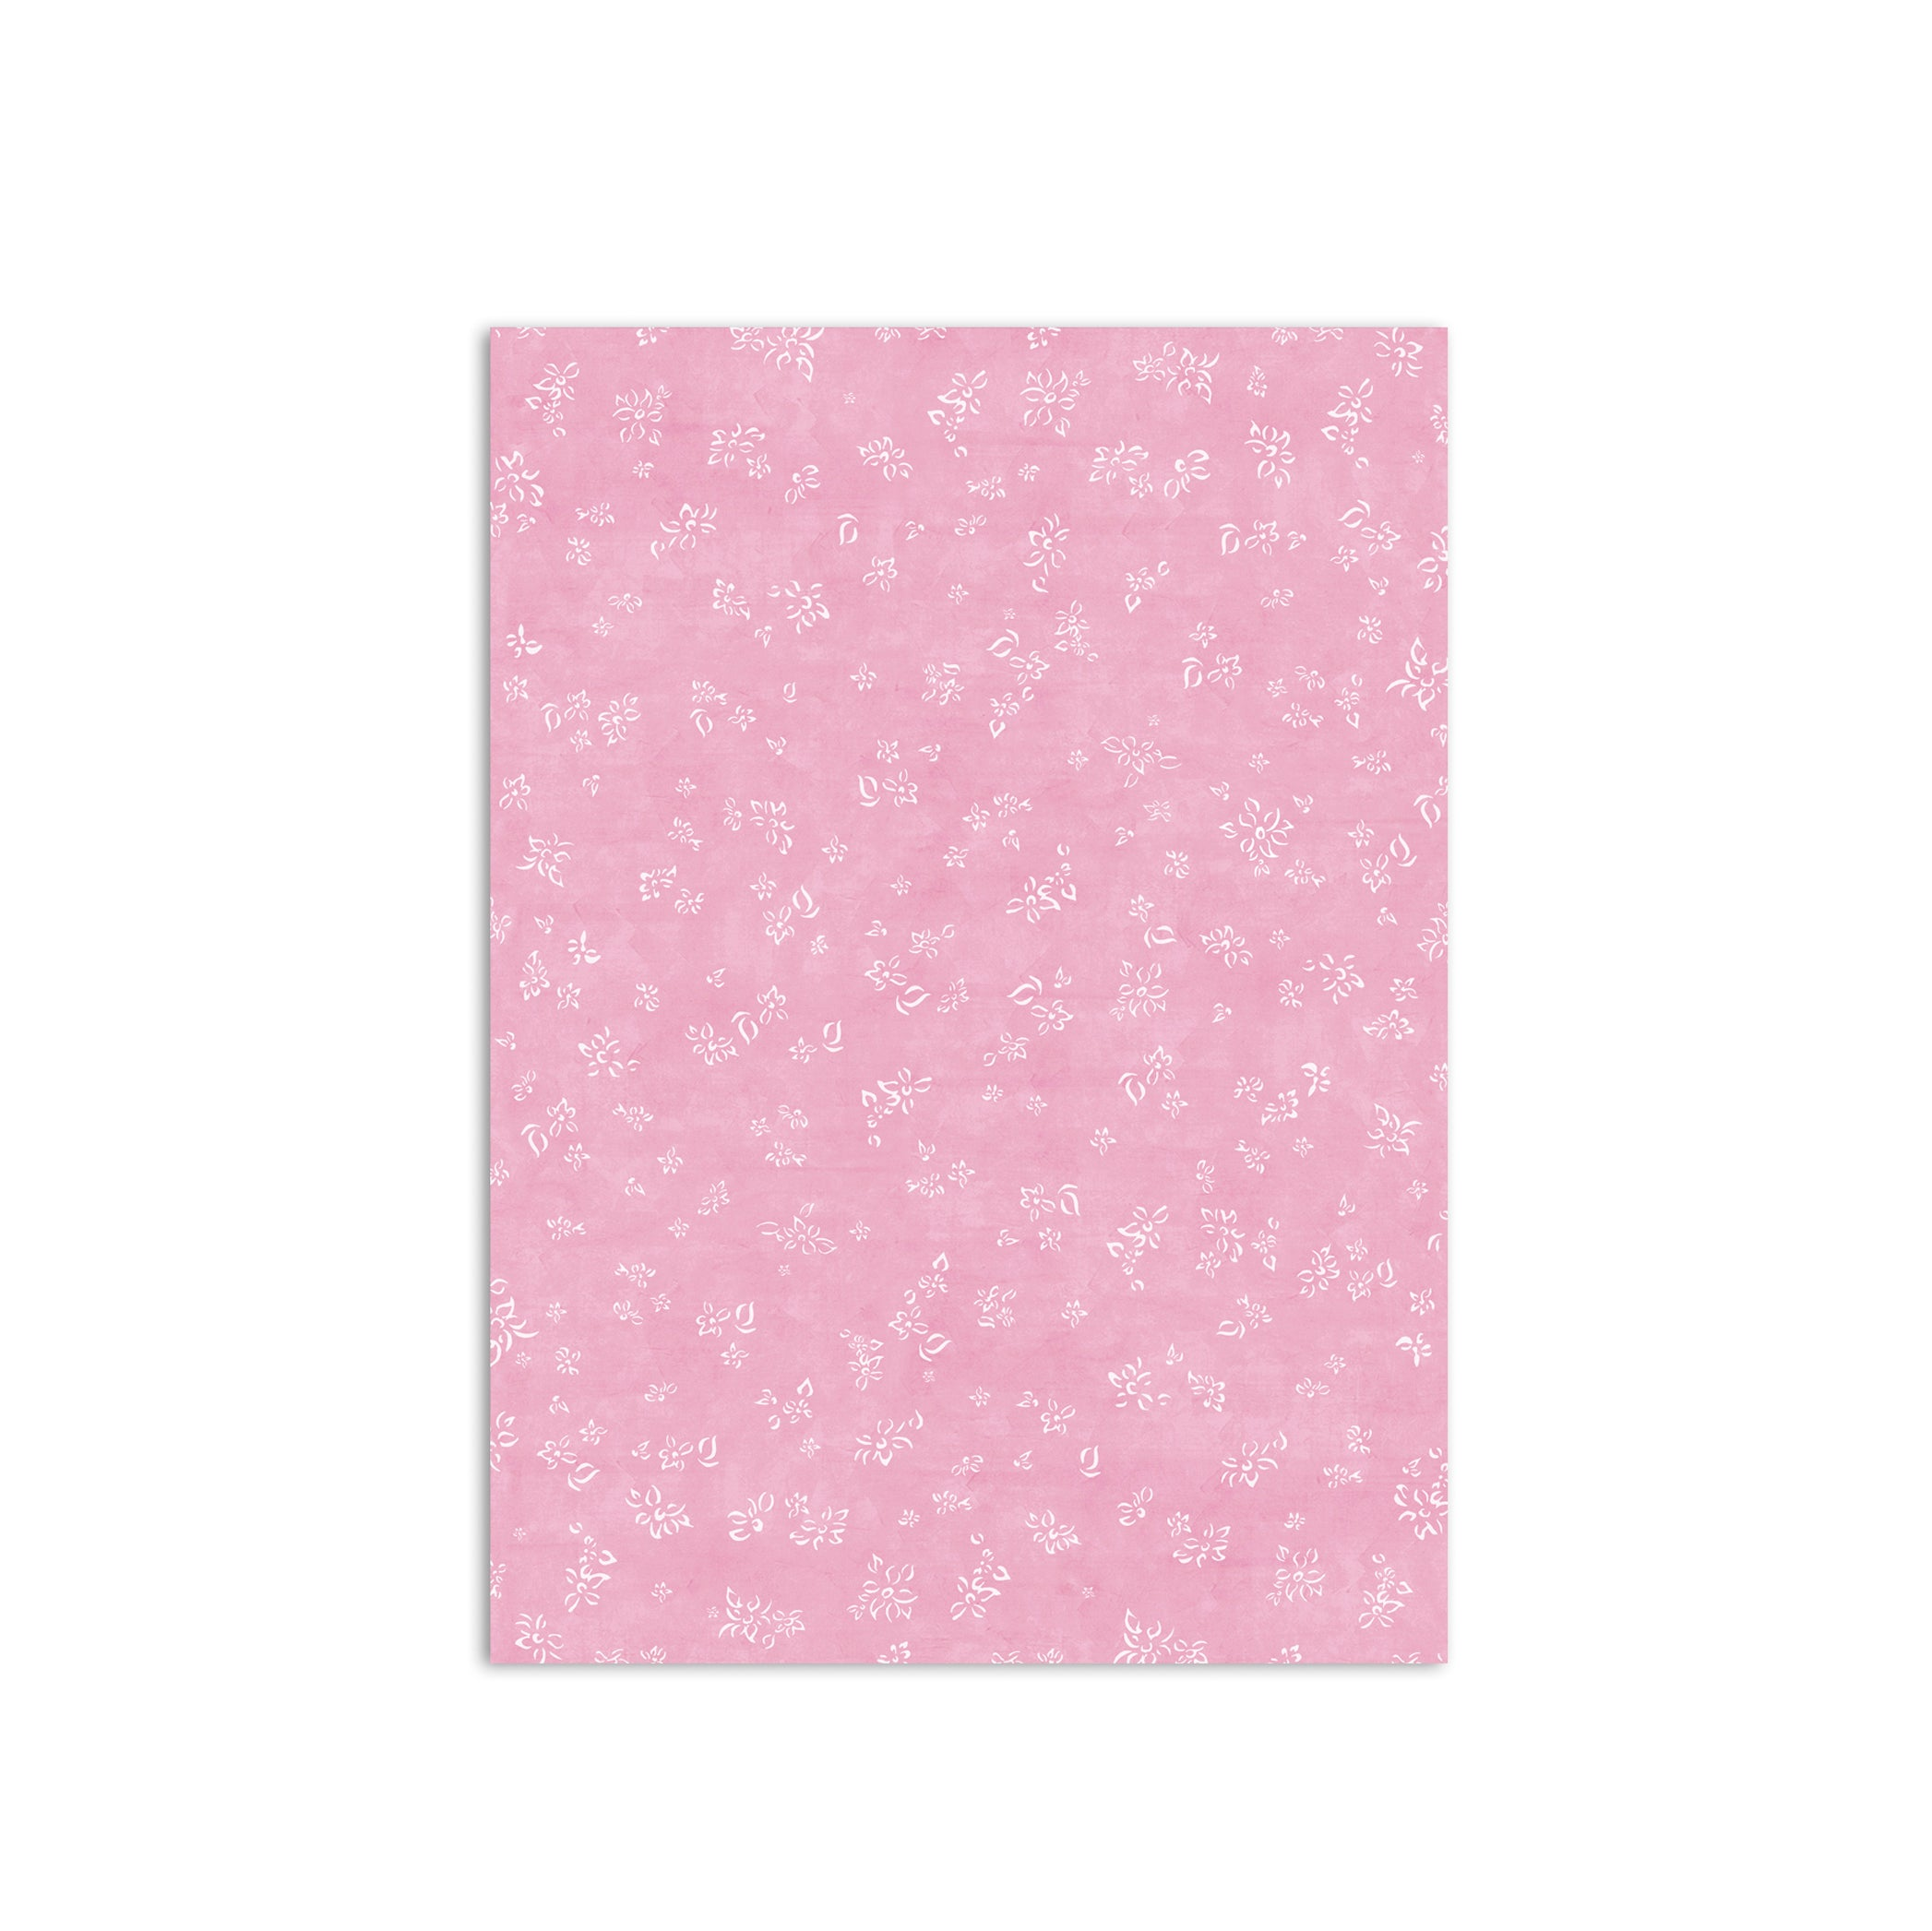 S&B Falling Flower Wrapping Paper in Rose Pink, Roll of 4